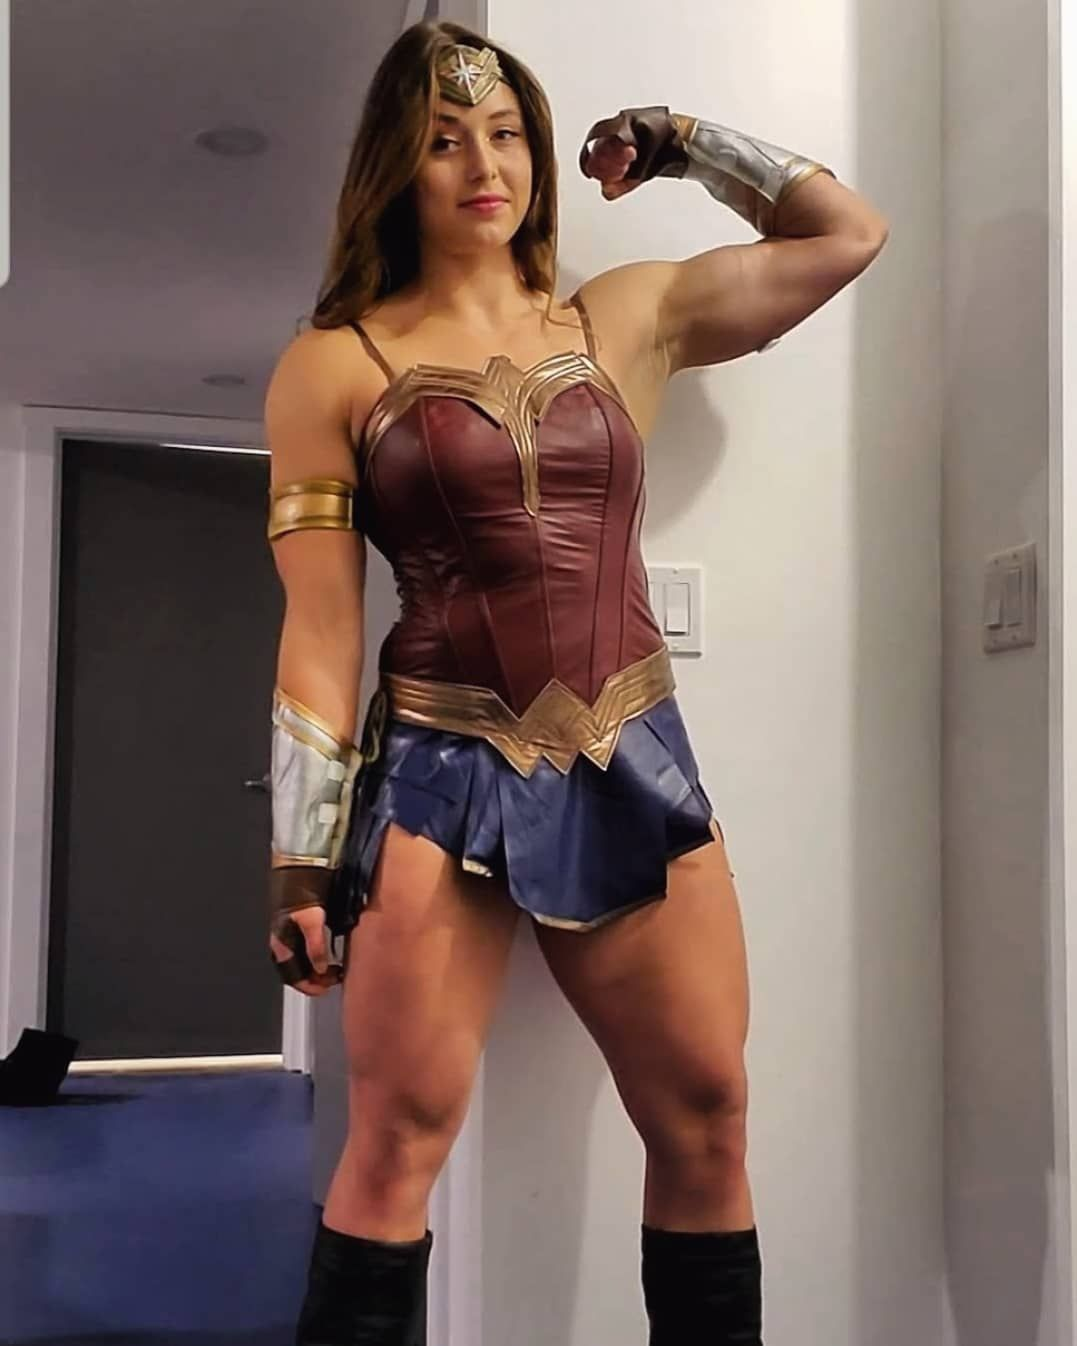 Jessica Buettner On Instagram When You Order From Amazon Prime Vs When You Order From Wish Wonderwoman Cosplay Disapp In 2020 Wonder Woman Strong Women Superhero